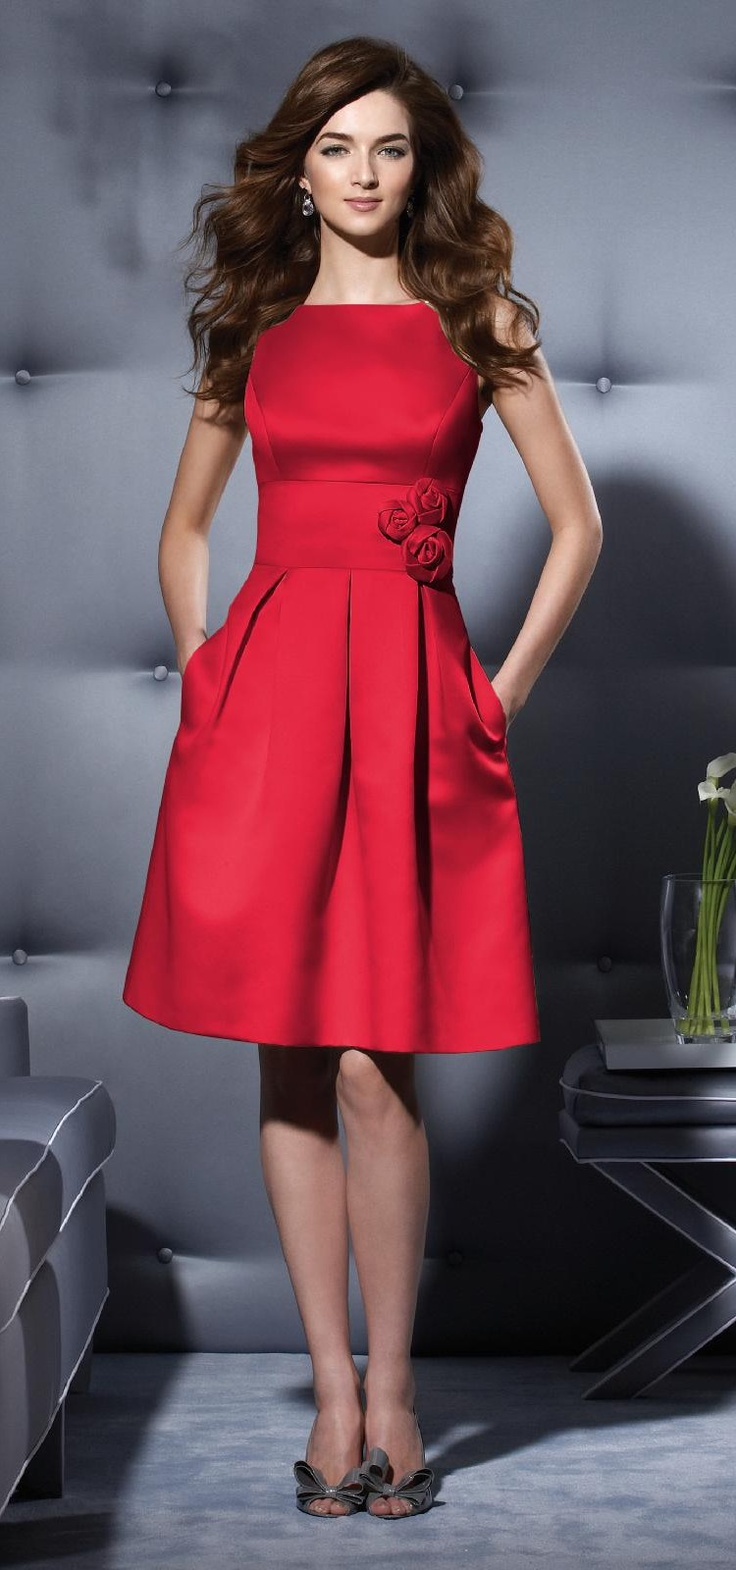 Dresses Christmas and christmas party wears pictures best photo